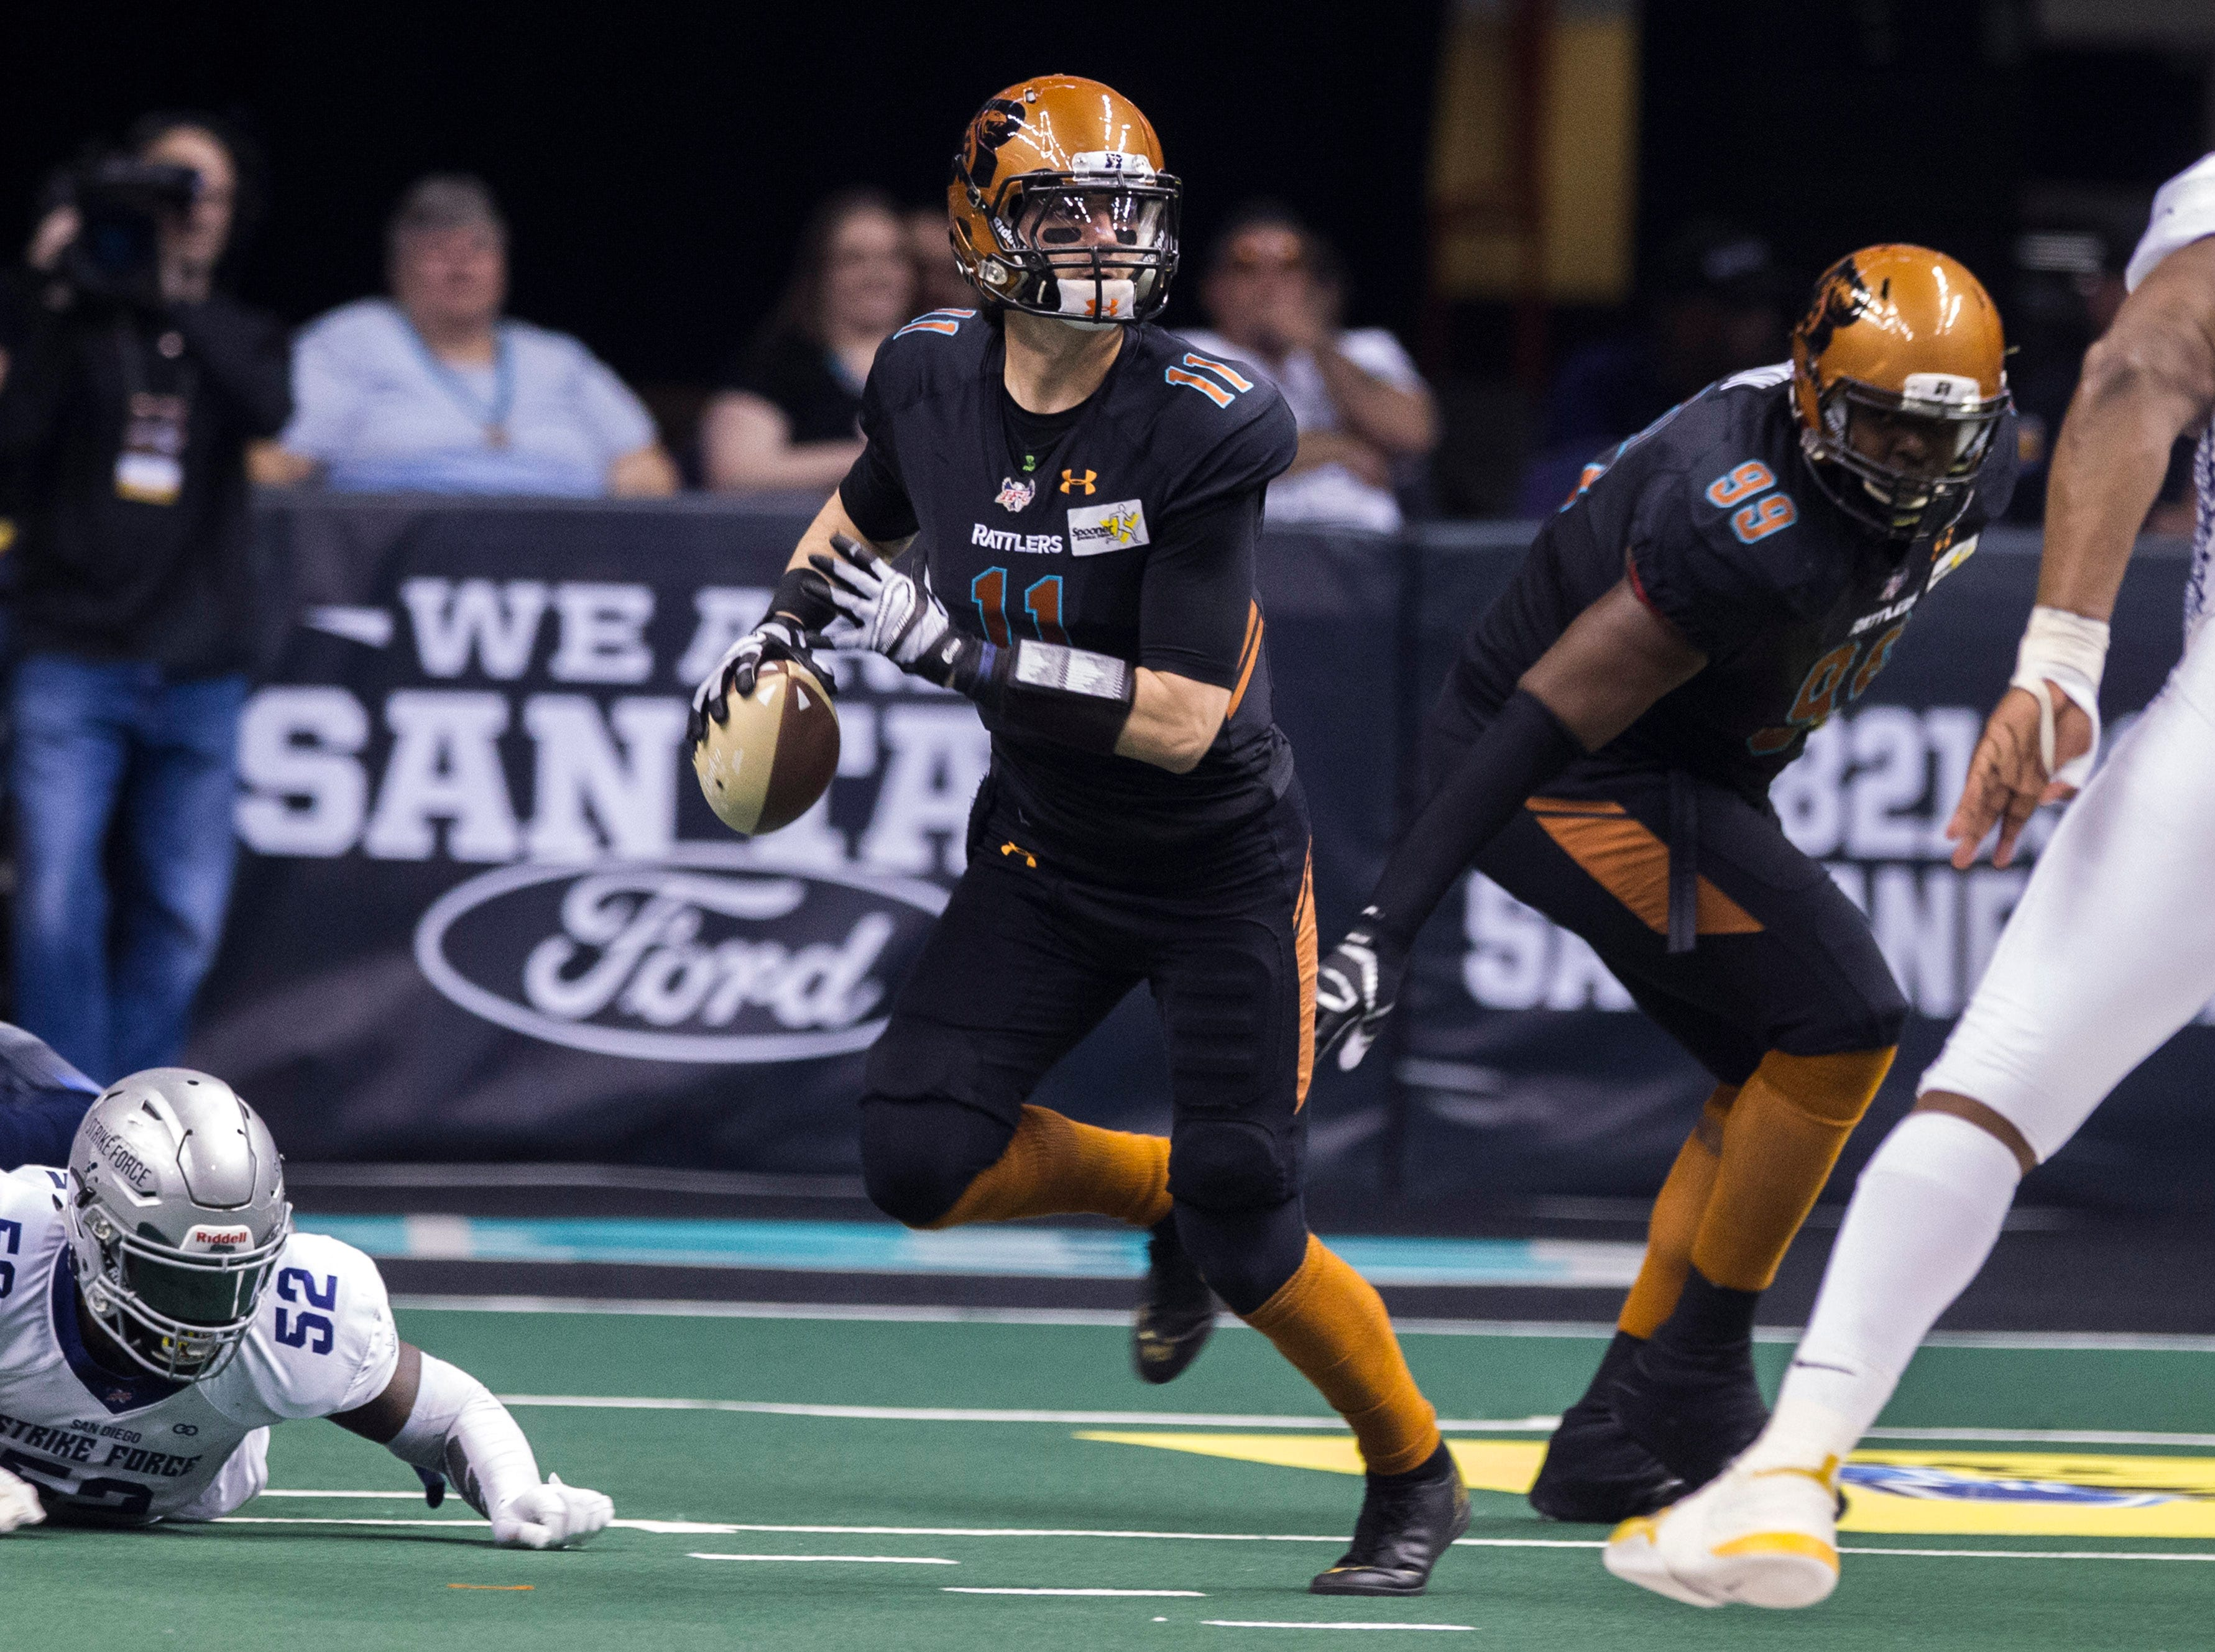 Arizona Rattlers' quarterback Jeff Ziembe looks down field during the first half of their game against the San Diego Strike Force at Talking Stick Resort Arena in Phoenix Friday, April. 6, 2019.